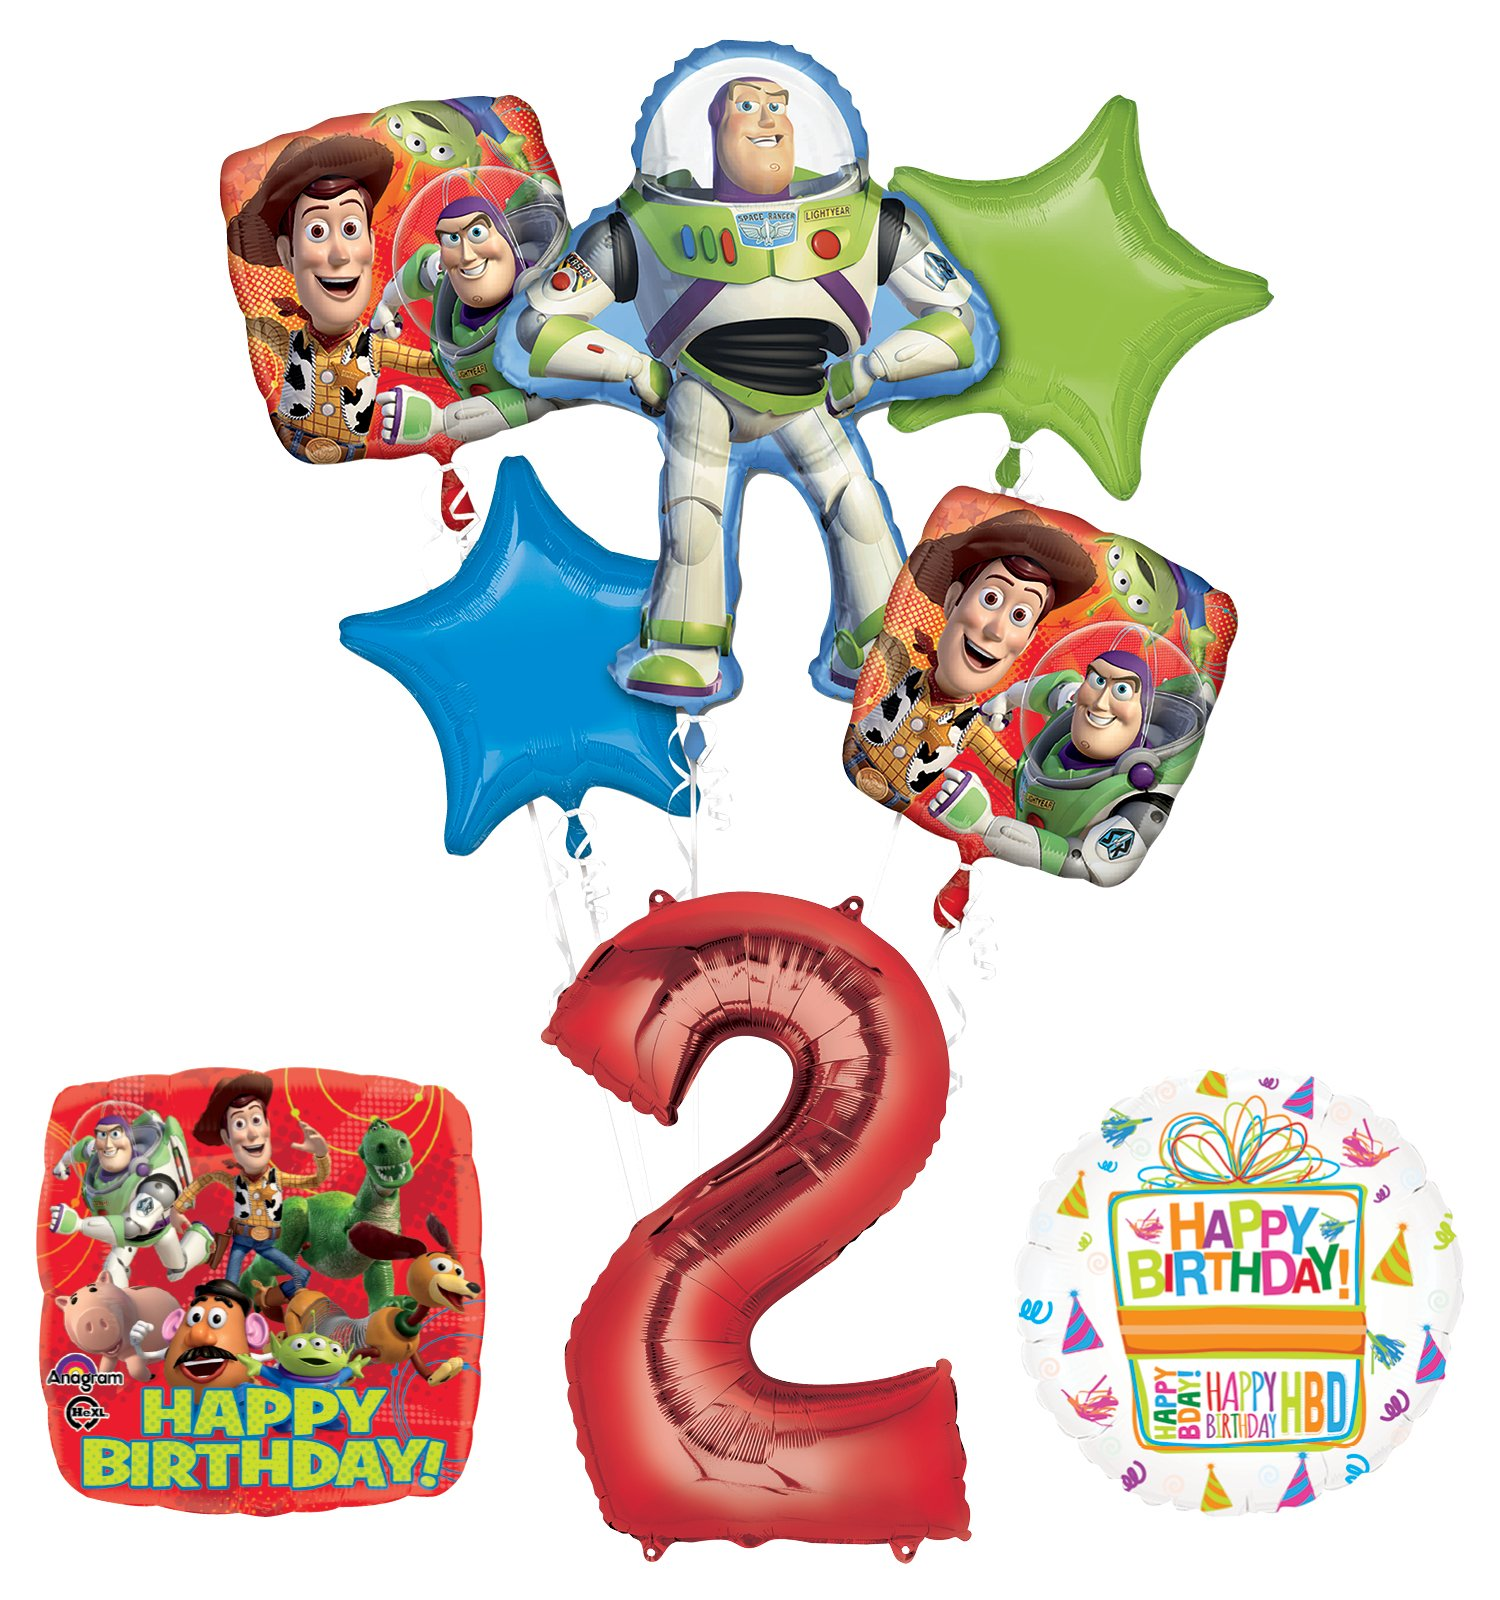 Toy Story 2nd Birthday Party Supplies and Balloon Bouquet Decorations